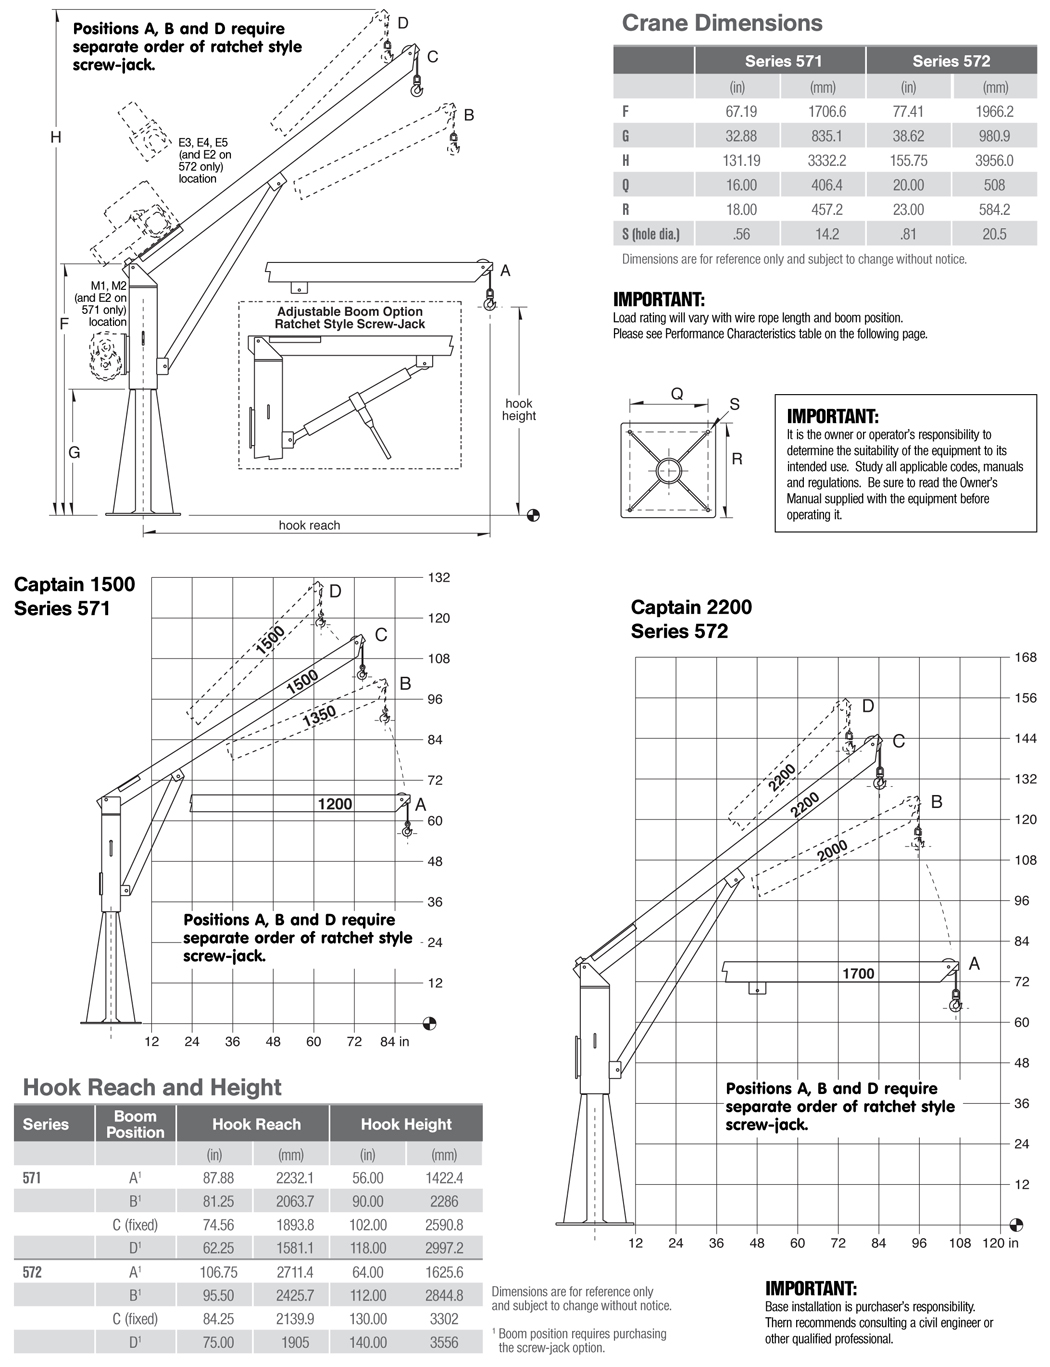 Captain 2200 Series Thern Powerwinch Wiring Diagram 57series Dimensions